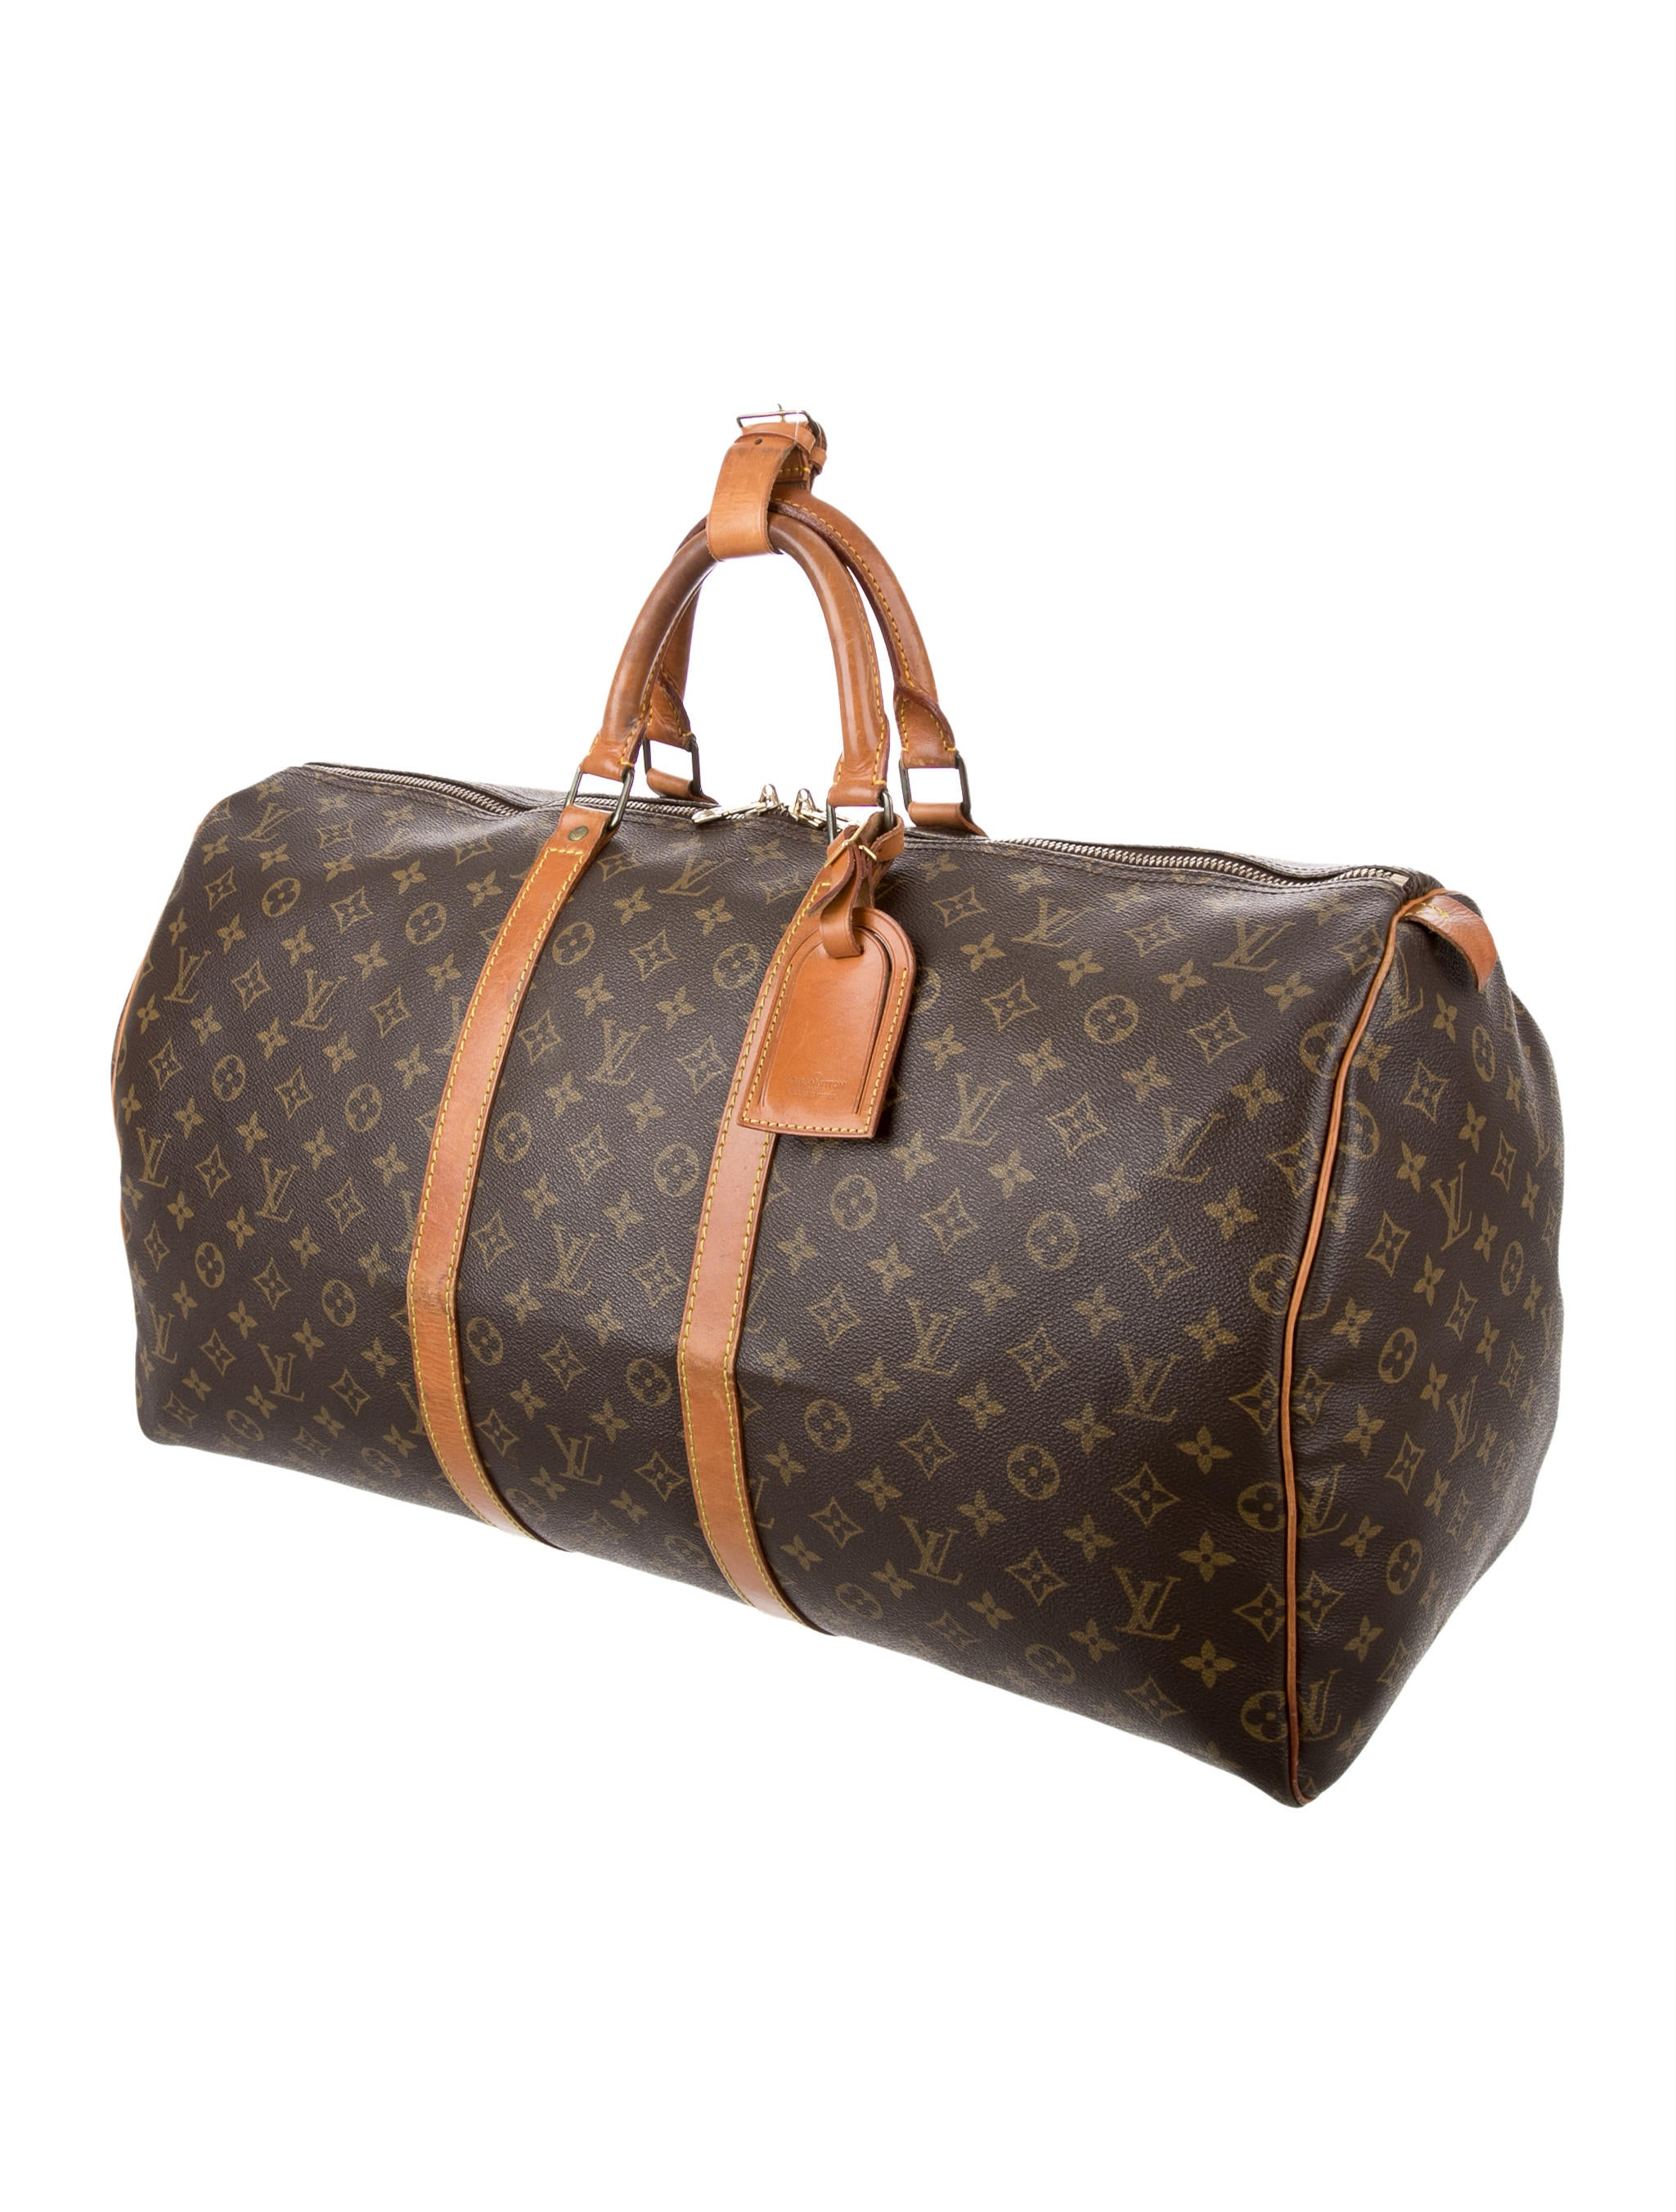 louis vuitton monogram keepall 55 handbags lou121288 the realreal. Black Bedroom Furniture Sets. Home Design Ideas